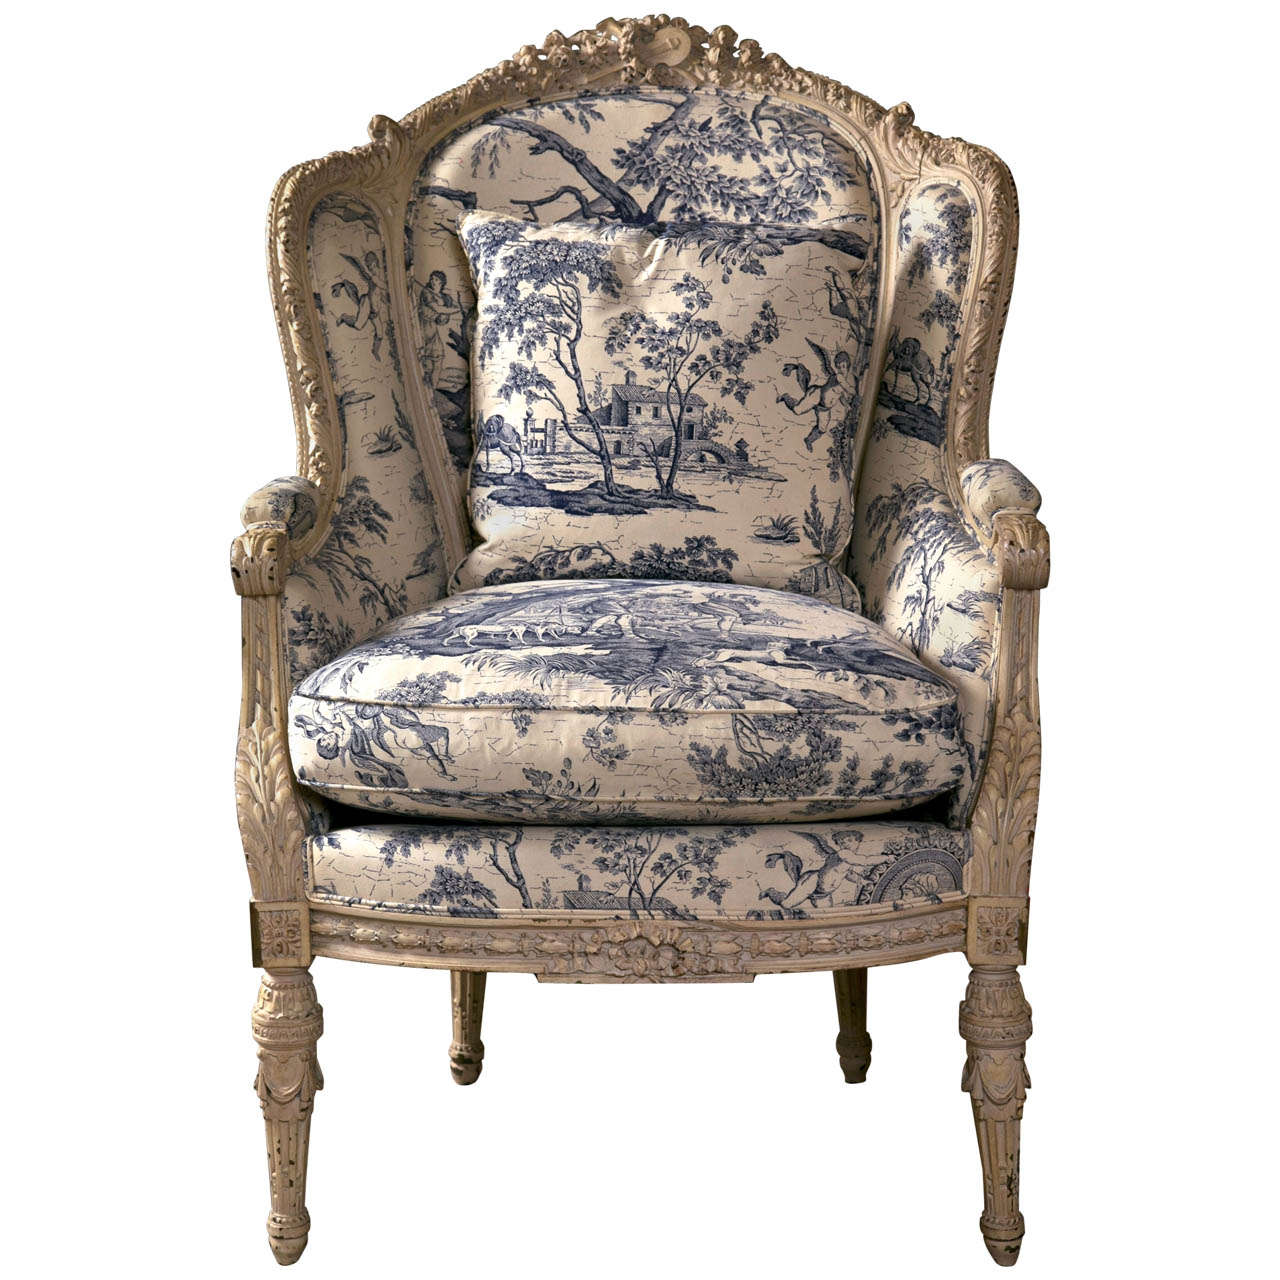 19th C. Antique French Wingback Bergere Chair For Sale - 19th C. Antique French Wingback Bergere Chair At 1stdibs